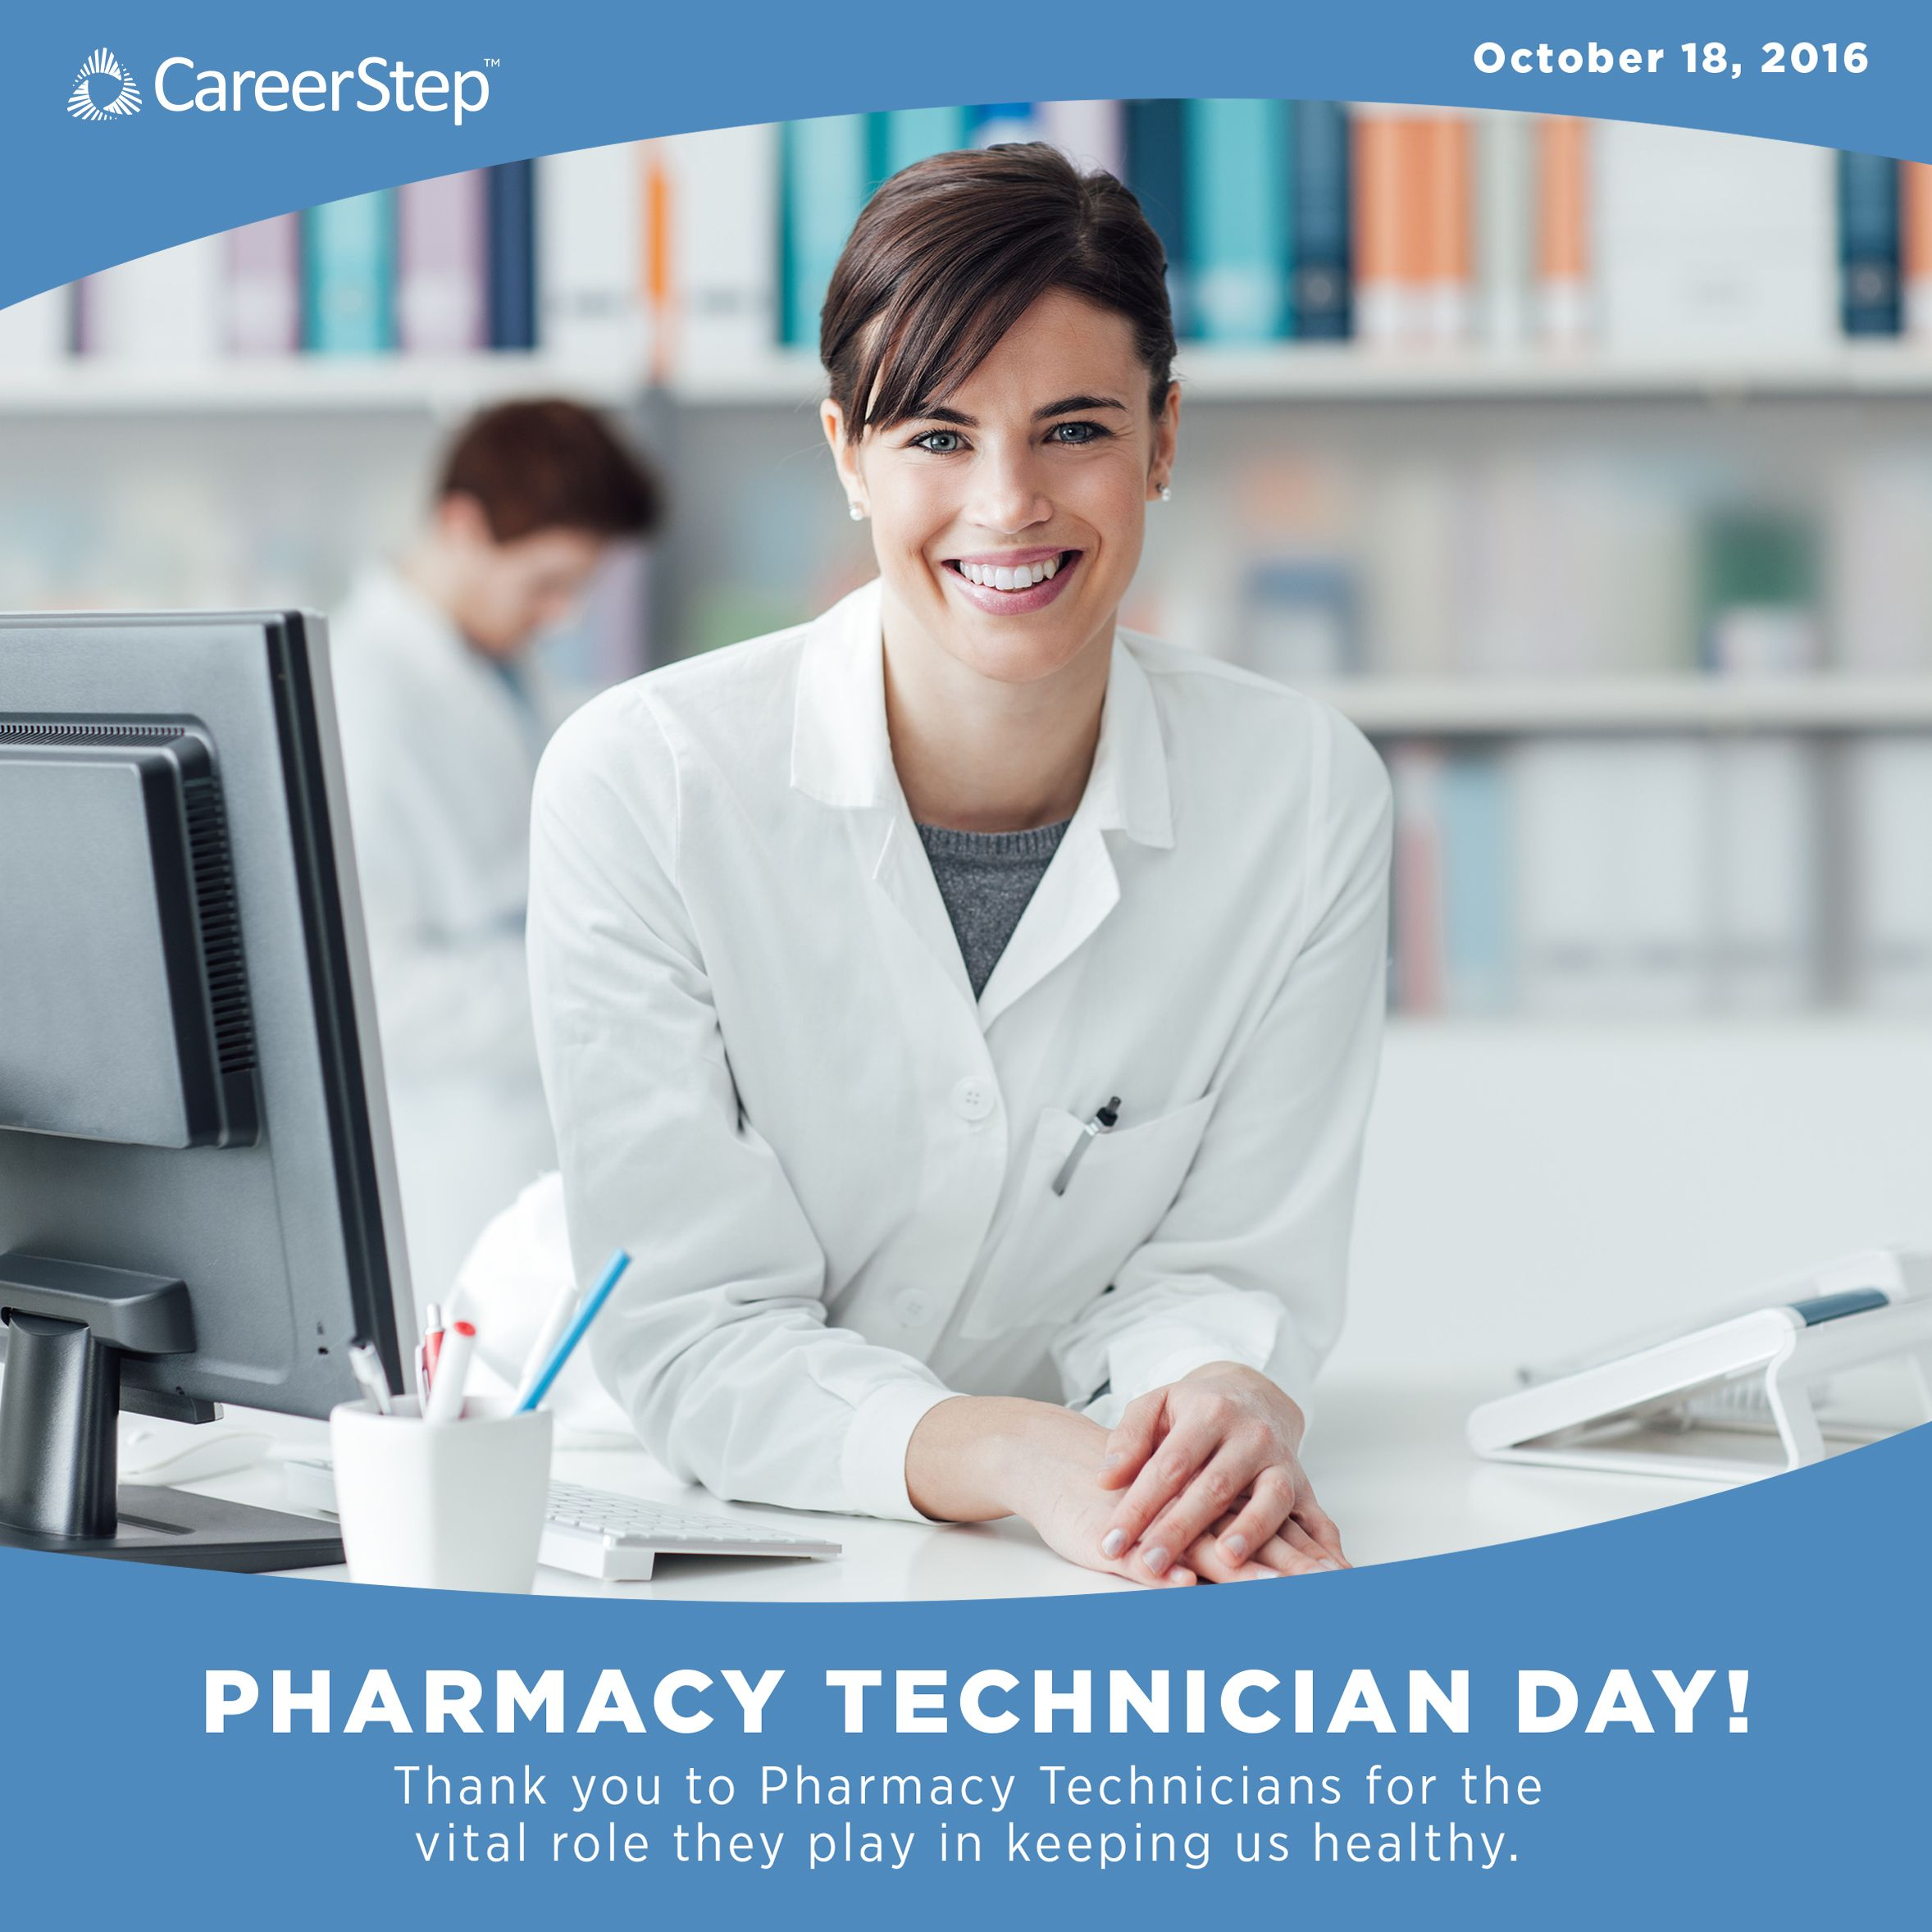 National Pharmacy Technician Day is October 18th! Join us